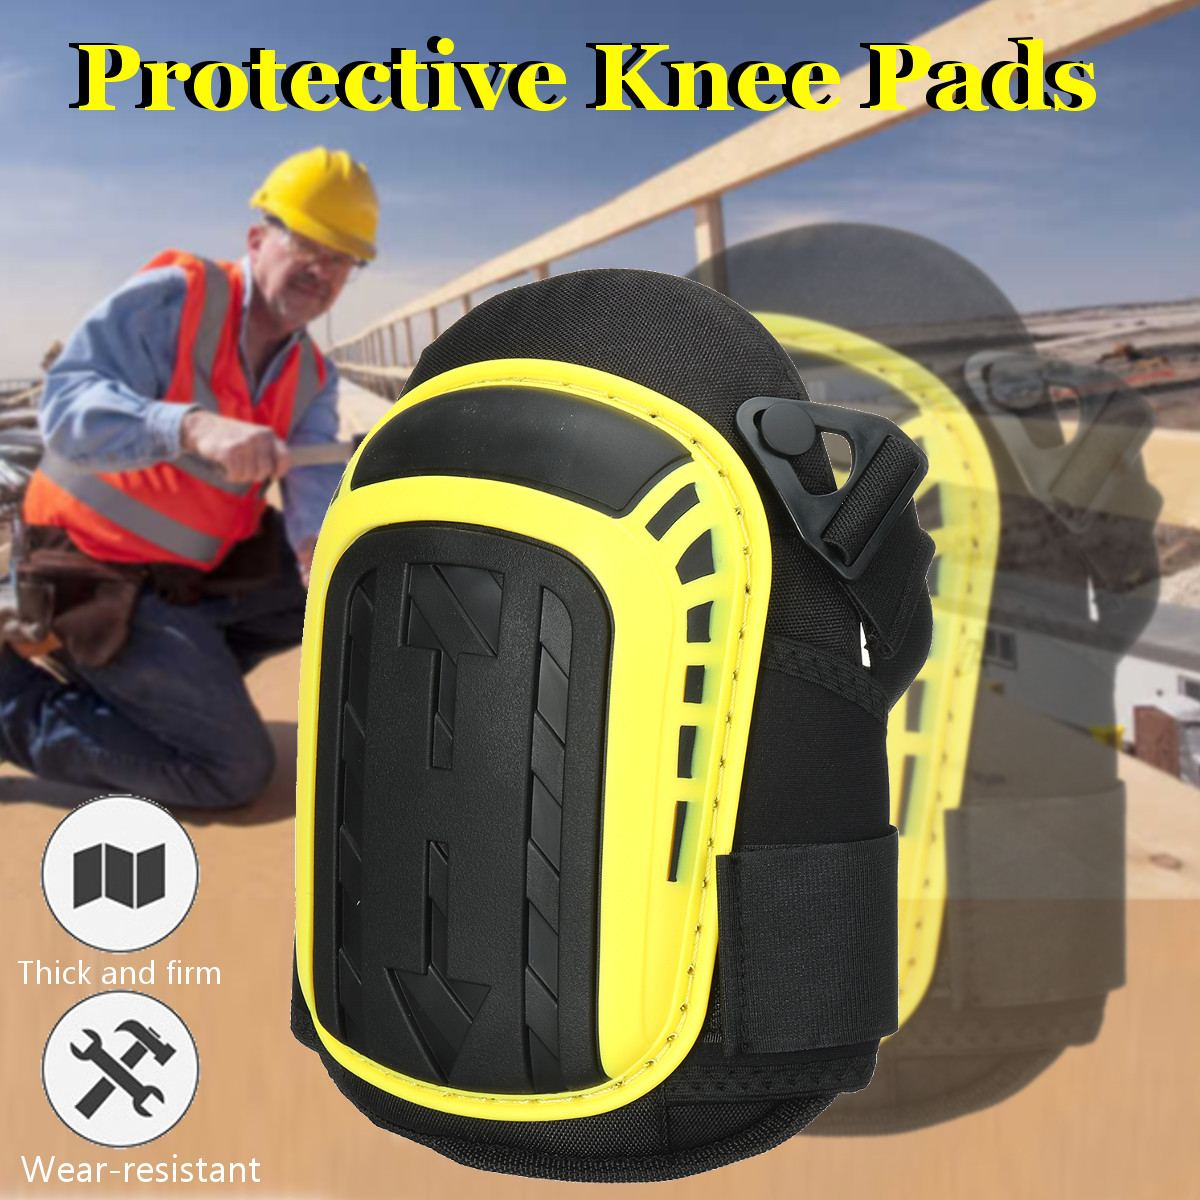 Gel Knee Pads For Work Gardening-Heavy Duty Professional Knee Pad With EVA Foam GEL Cushion For Construction Concrete